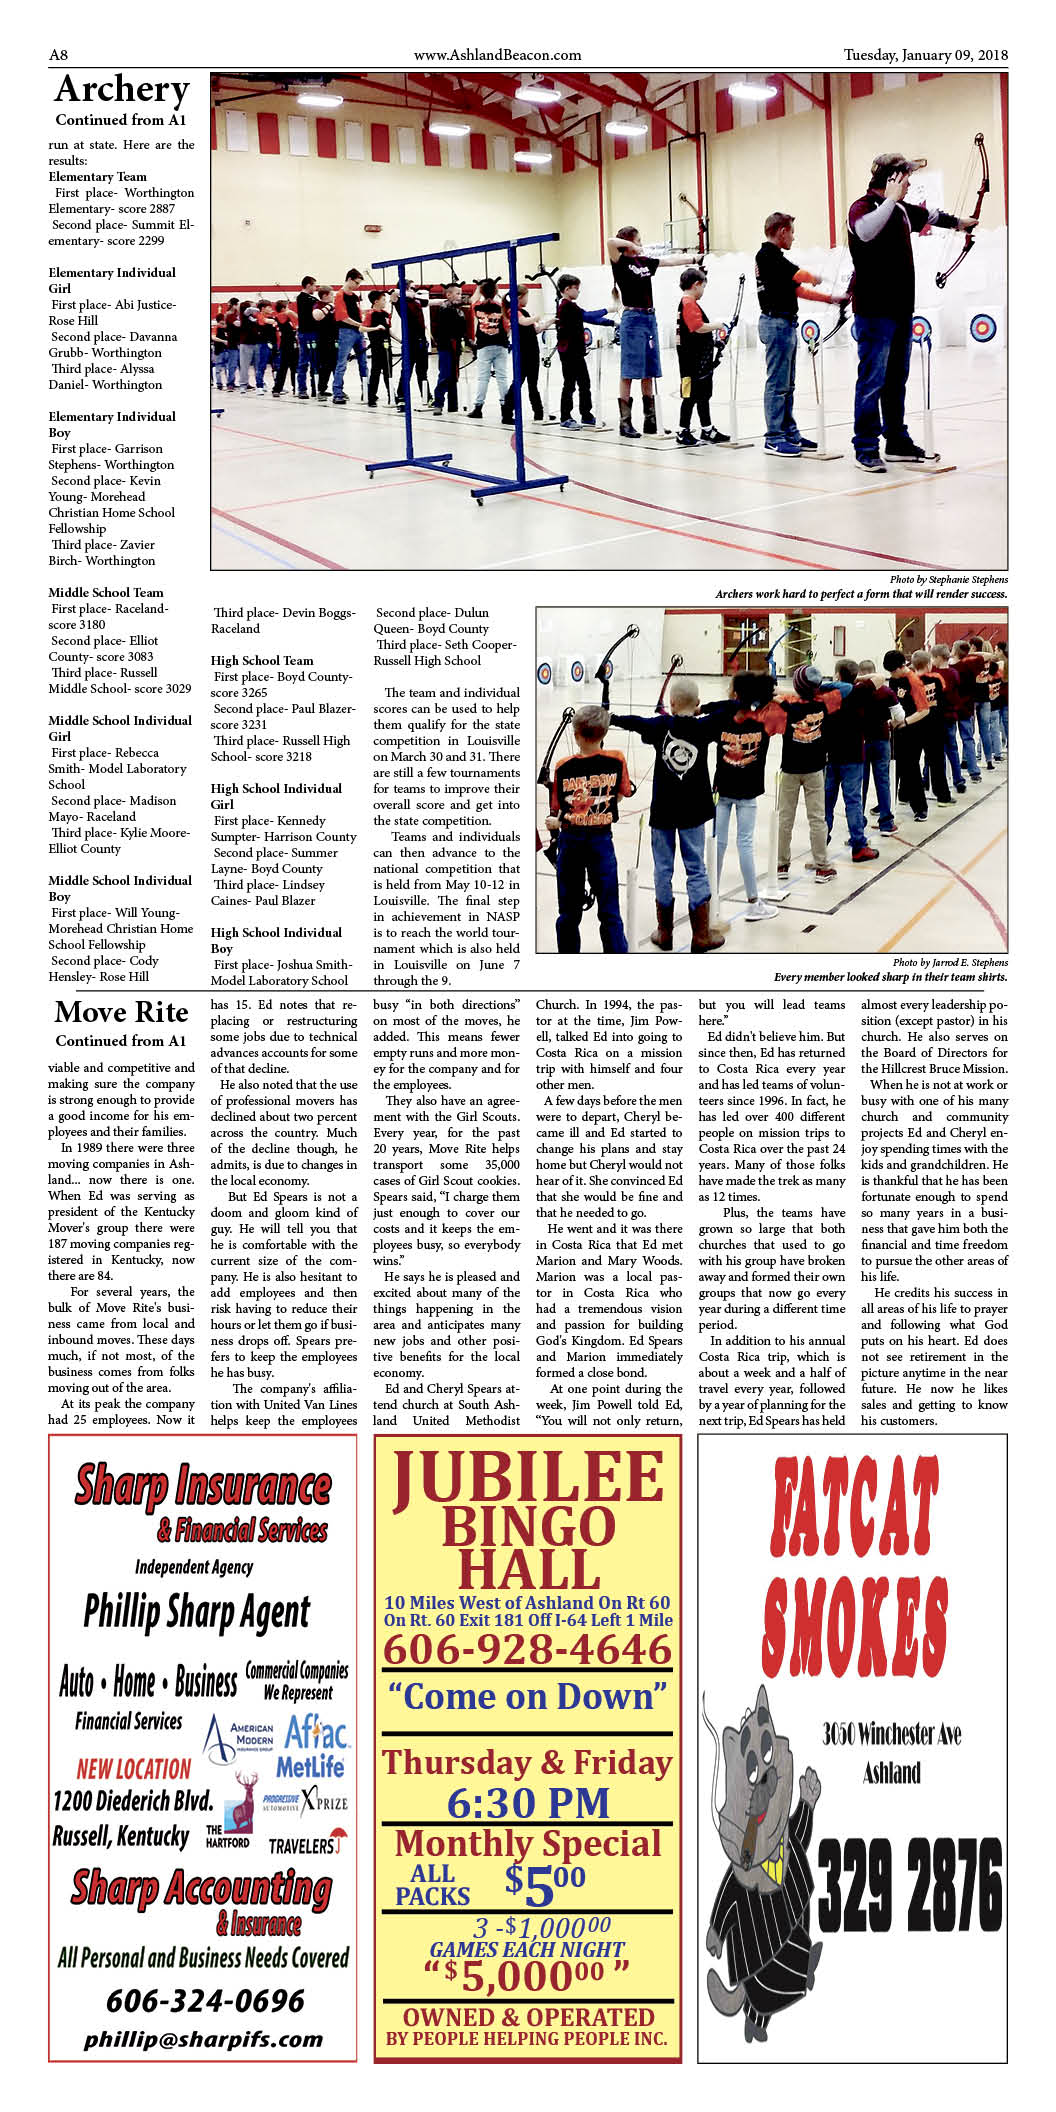 Page 8 of the Greater Ashland Beacon article about the winter archery tournament.